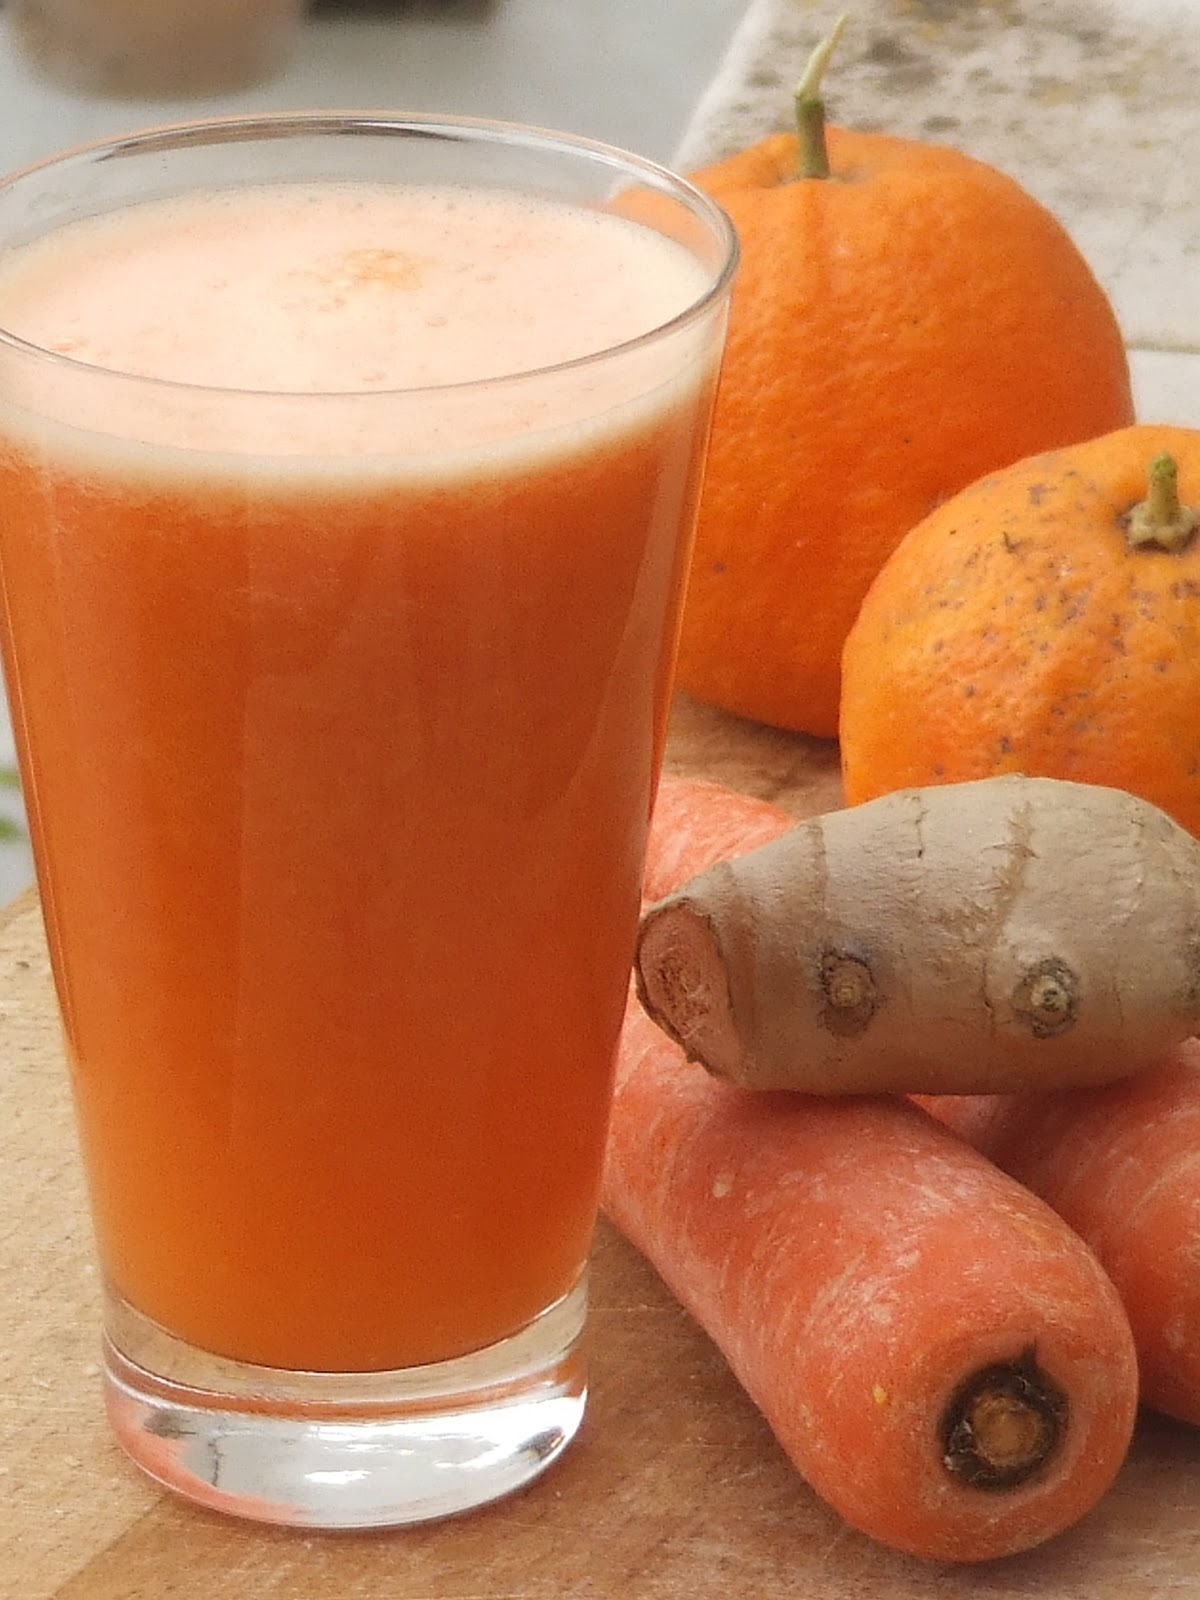 cozinheiro este algarve: Seville orange,carrot and ginger smoothie